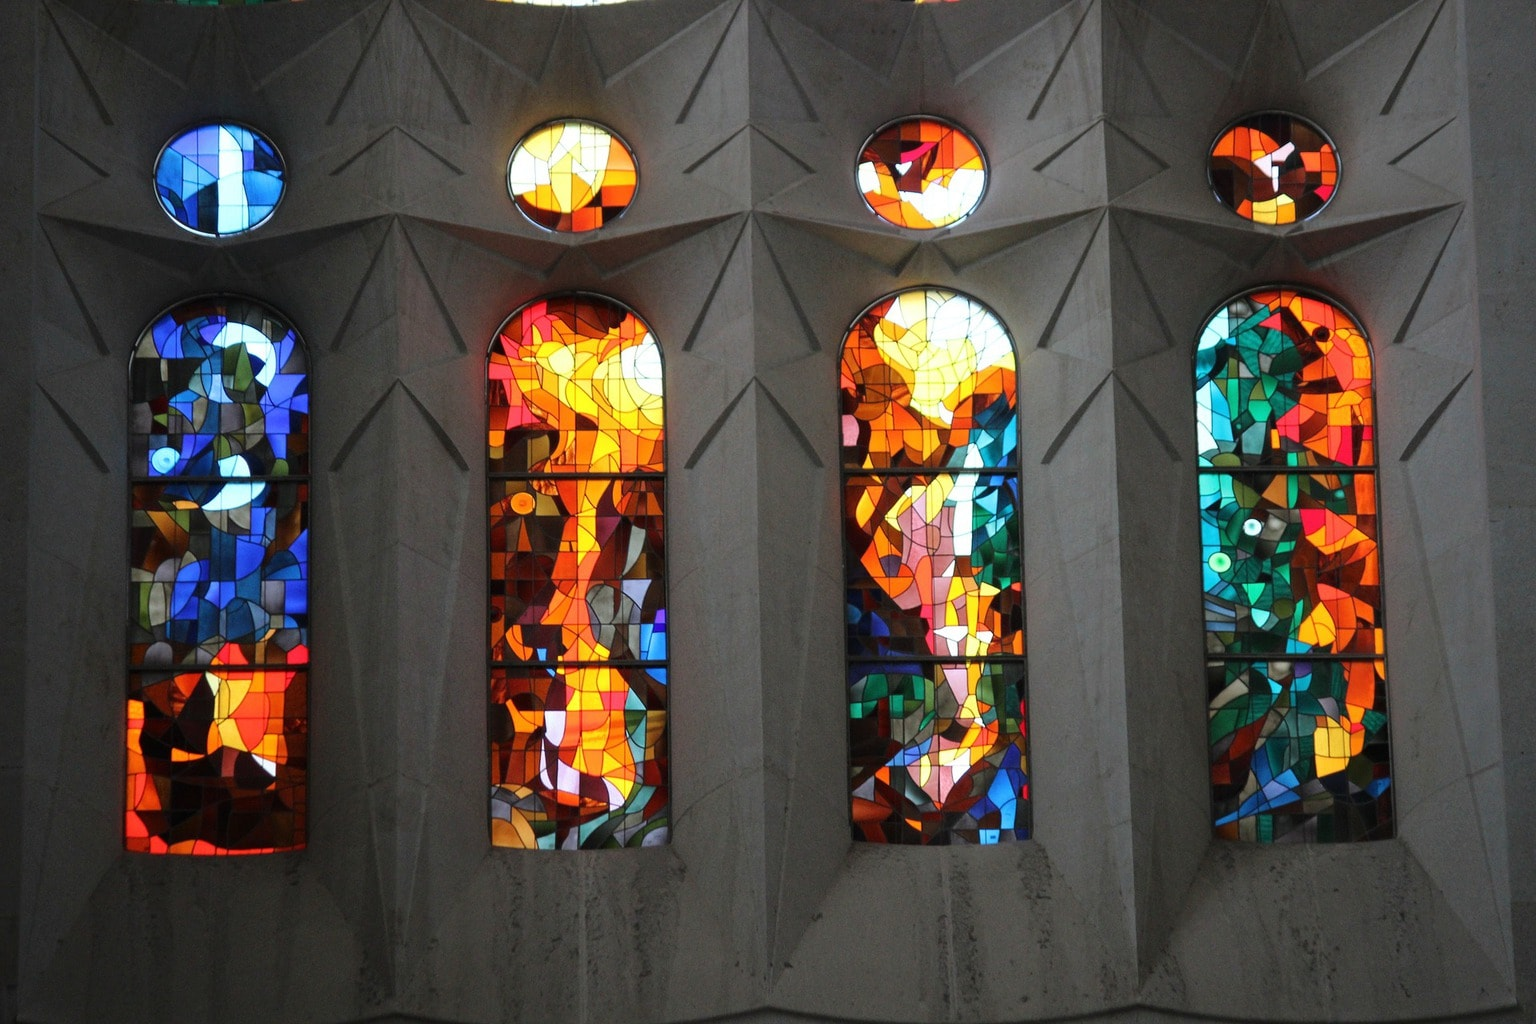 The colourful stained glass